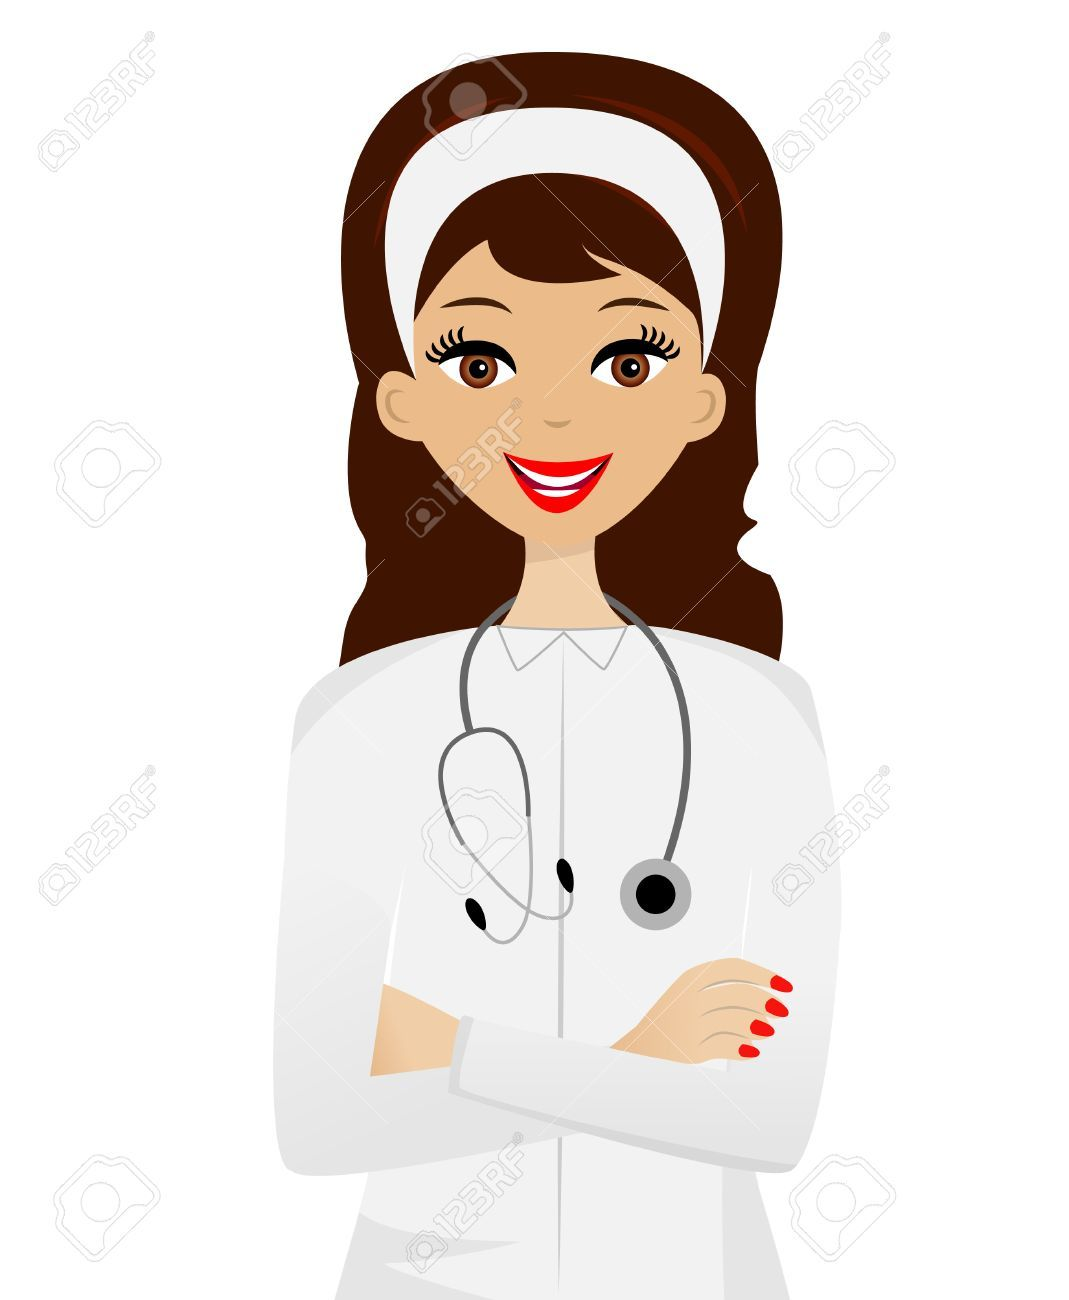 woman doctor clipart - Google Search